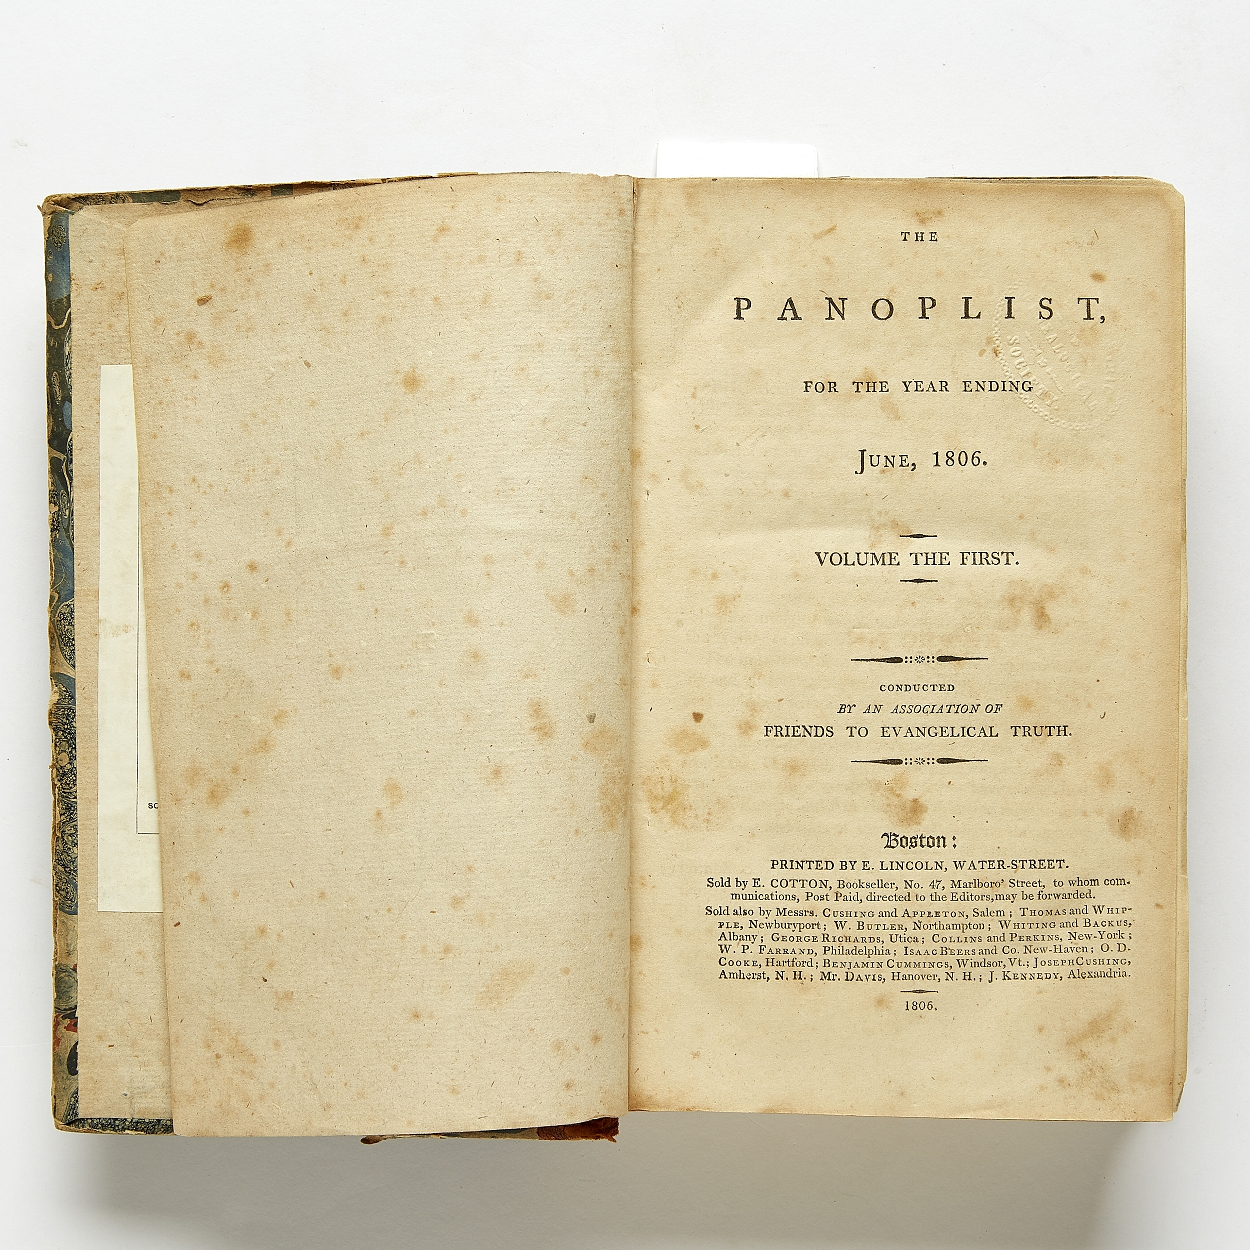 The Panoplist, important source on China 1806